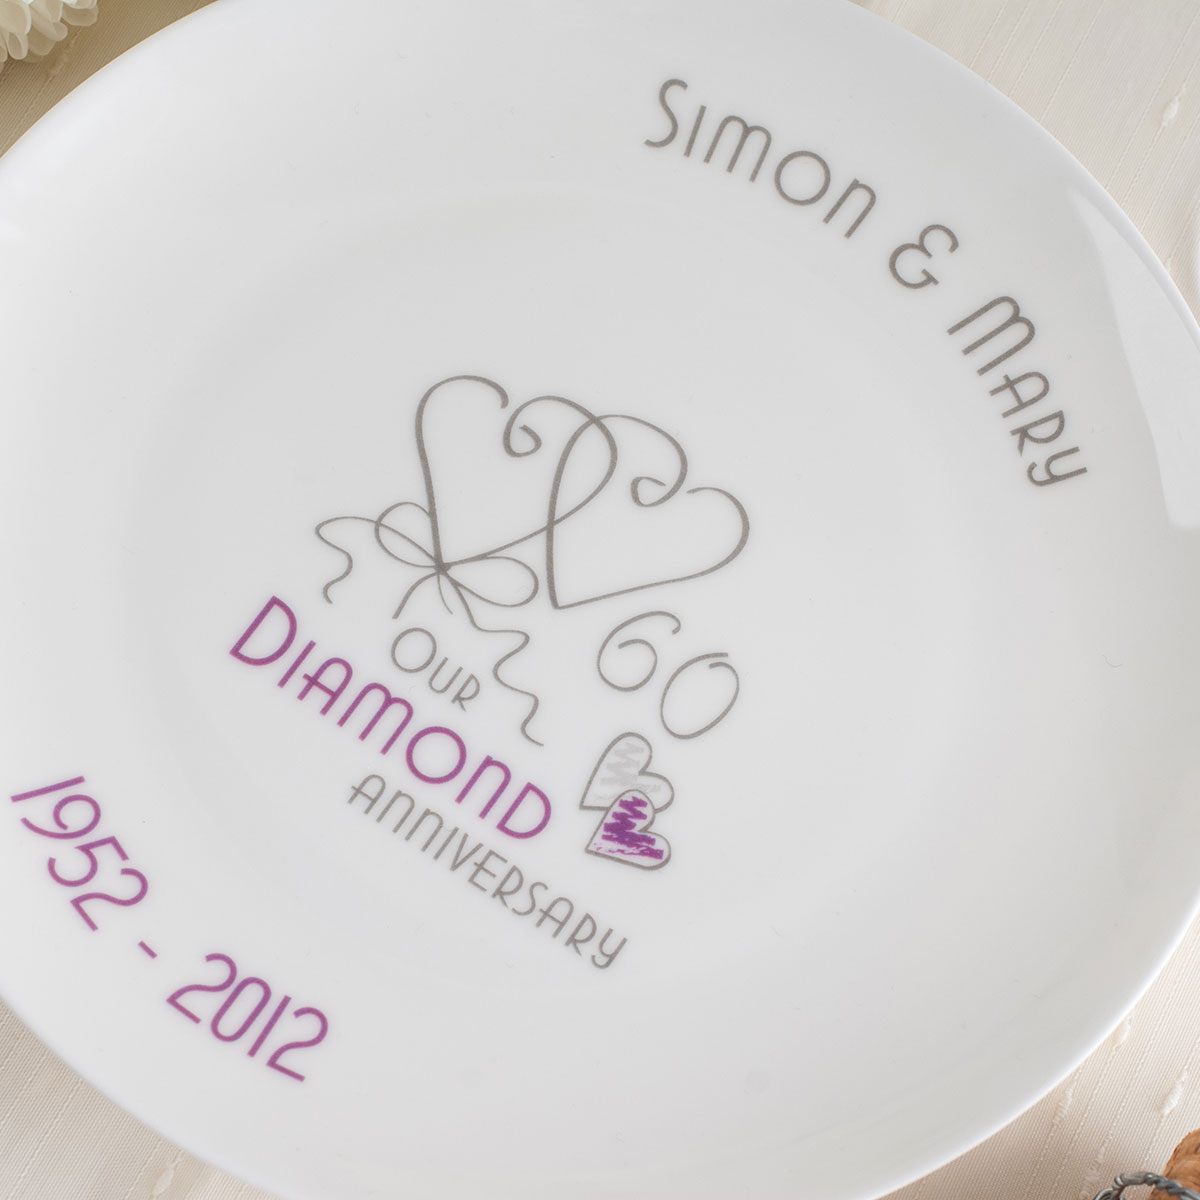 Personalised Bone China Plate - Diamond Anniversary Ribbon